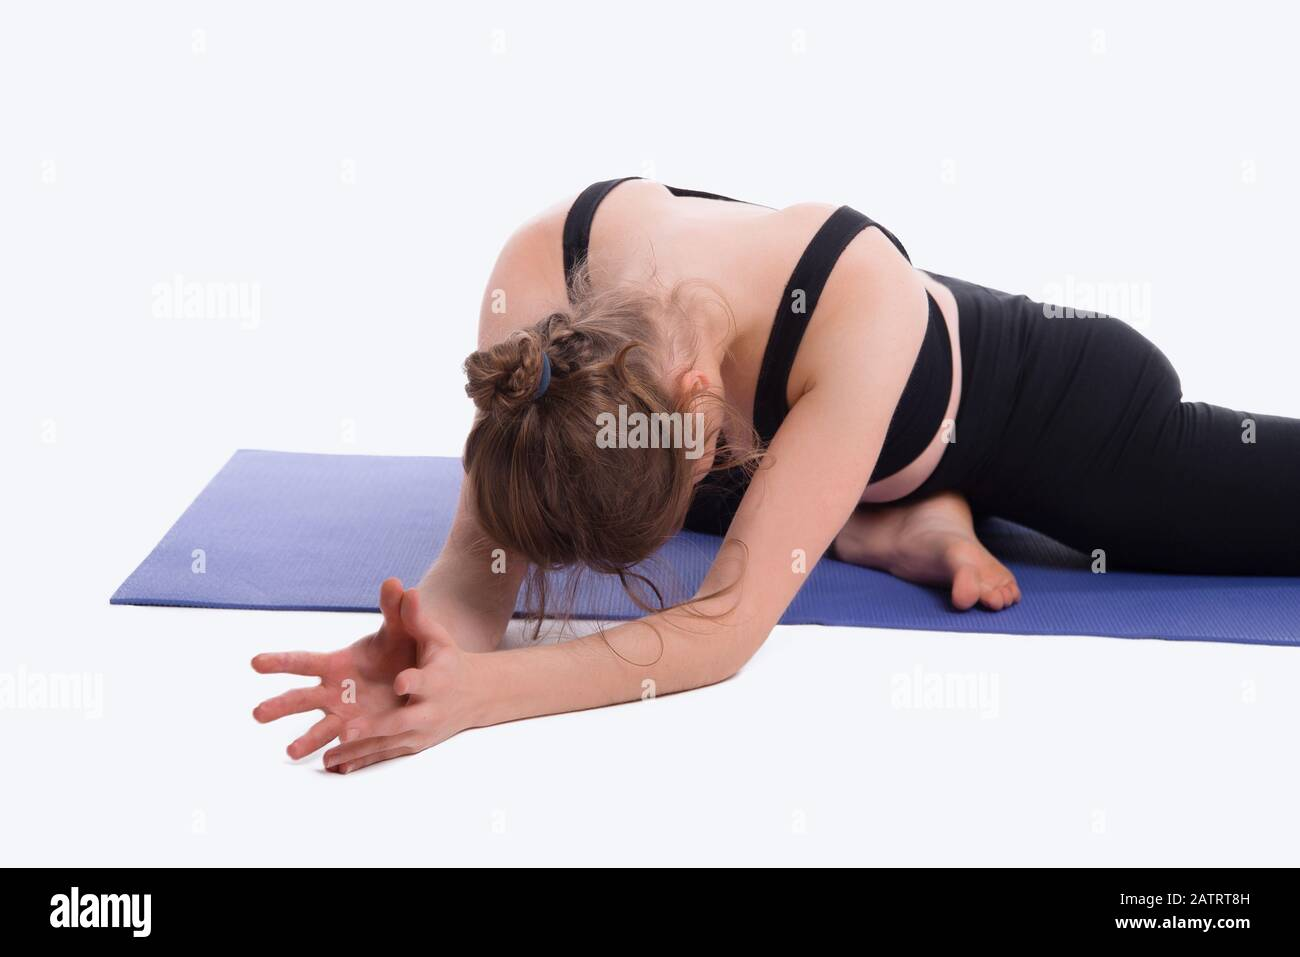 Mudrasana High Resolution Stock Photography And Images Alamy